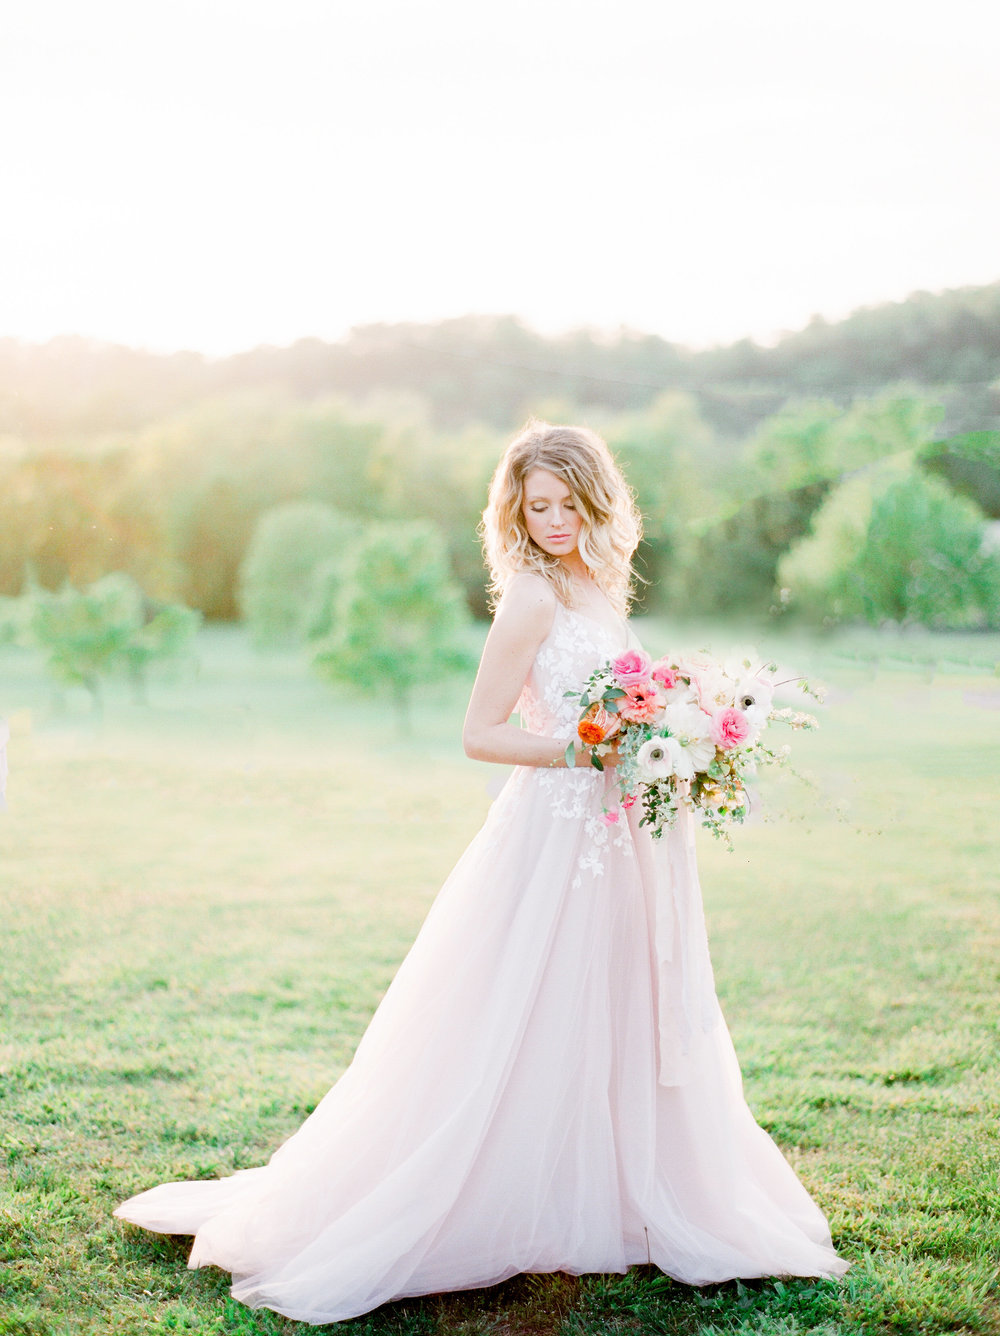 You can be a bride and wear color. Rosy gown by Hayley Paige. Photo by Julie Paisley. Florals by Petal and Pine. Styling by Feather + Oak. Hair and makeup by Leslie Ellis.